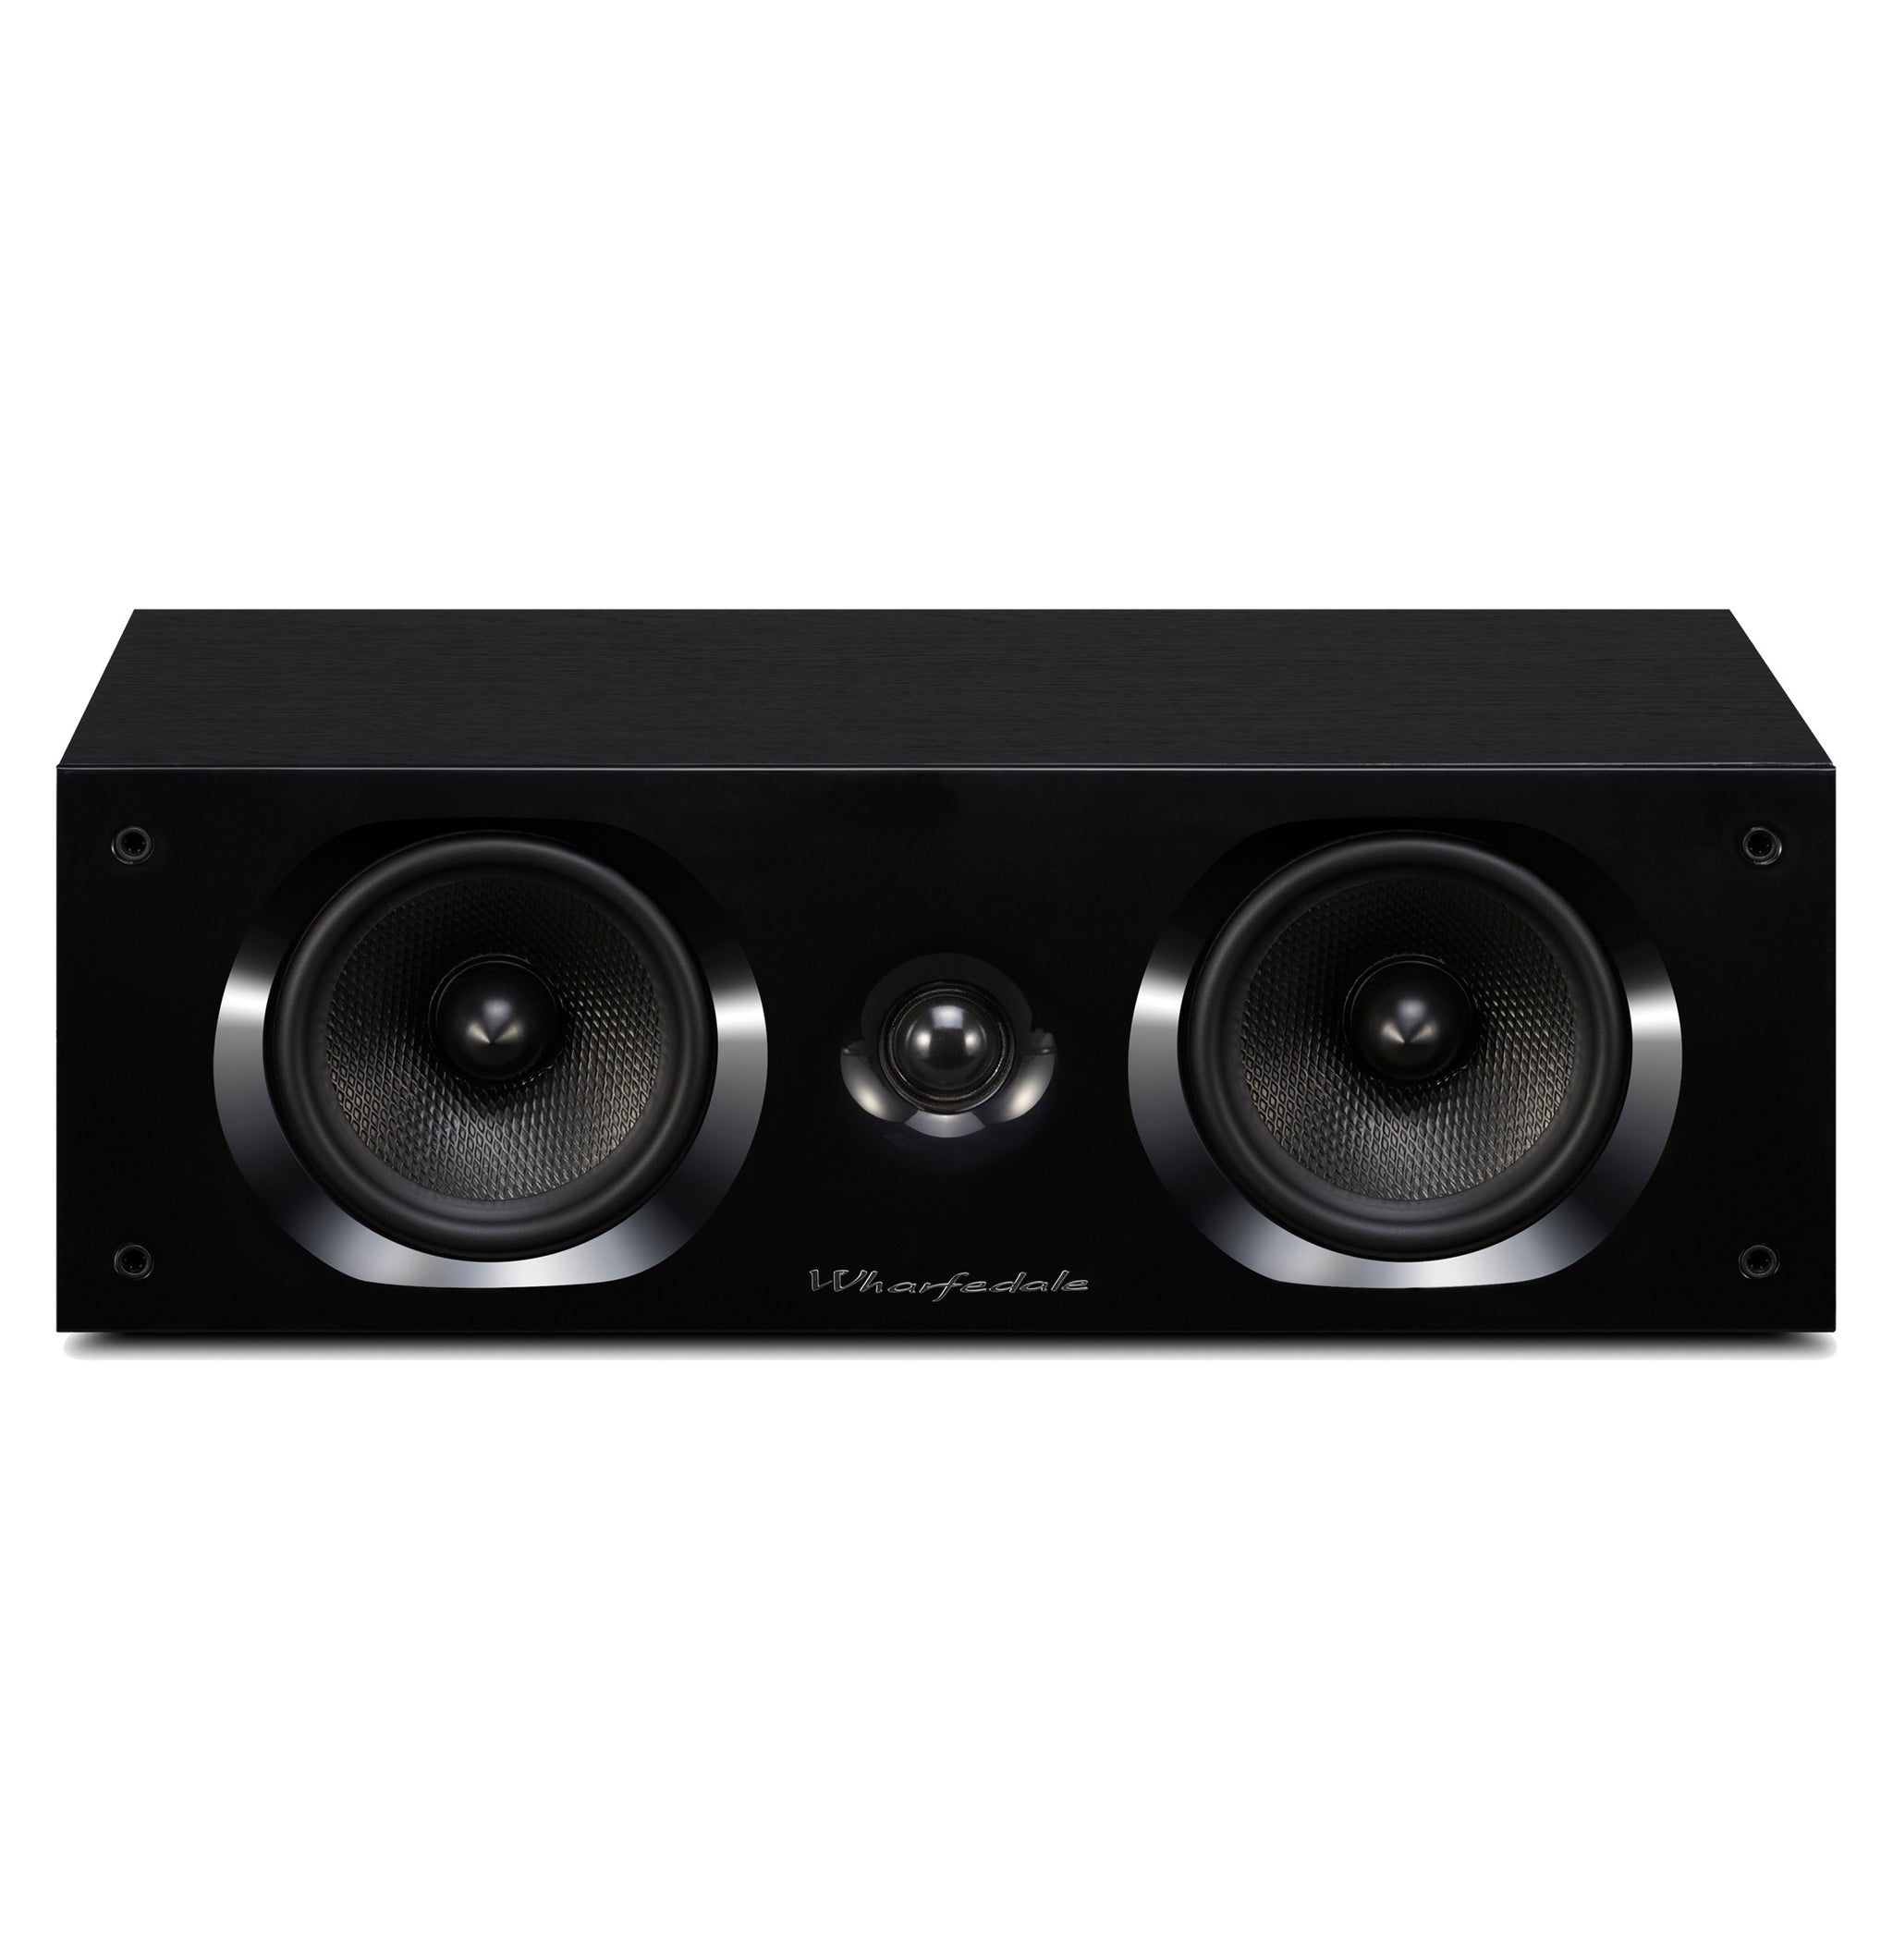 Quartz QC1 Centre Speaker